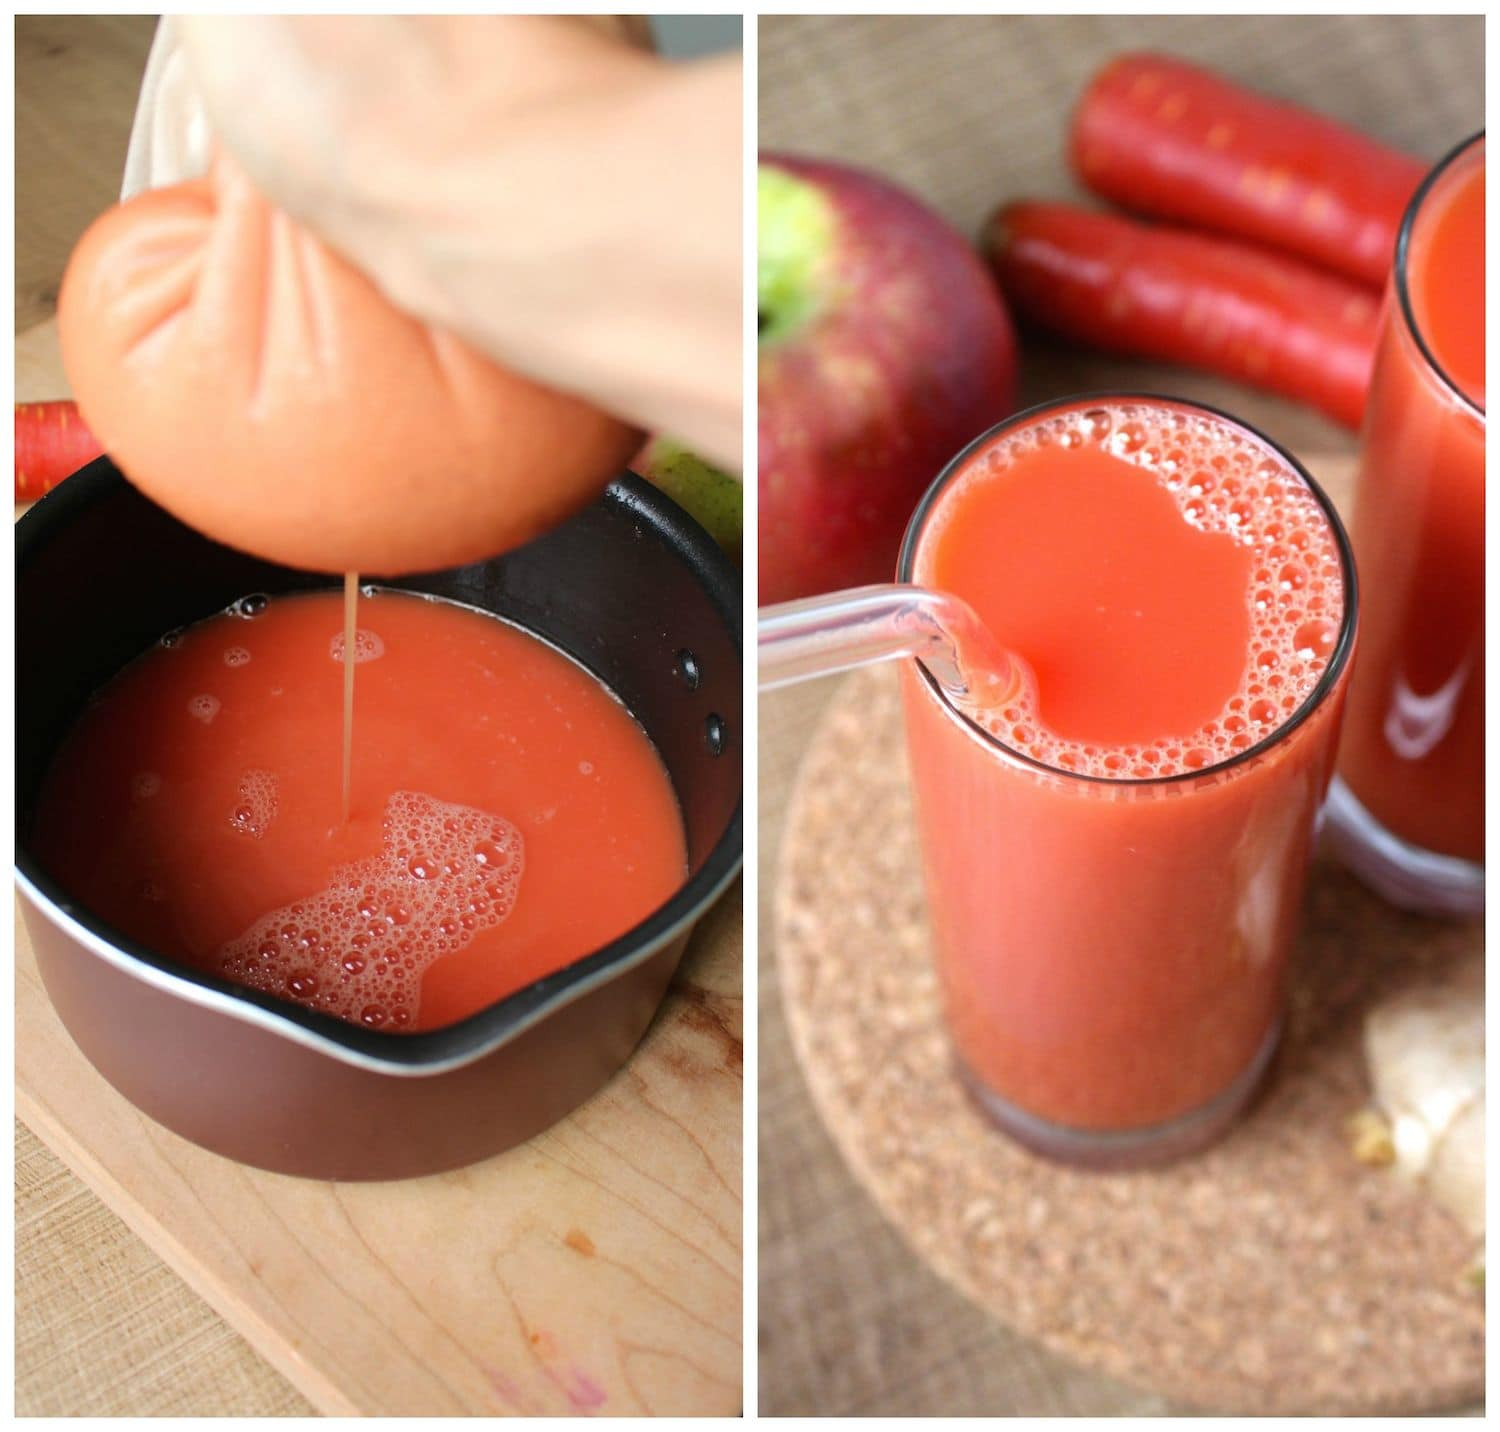 Straining Homemade Le Carrot And Ginger Juice